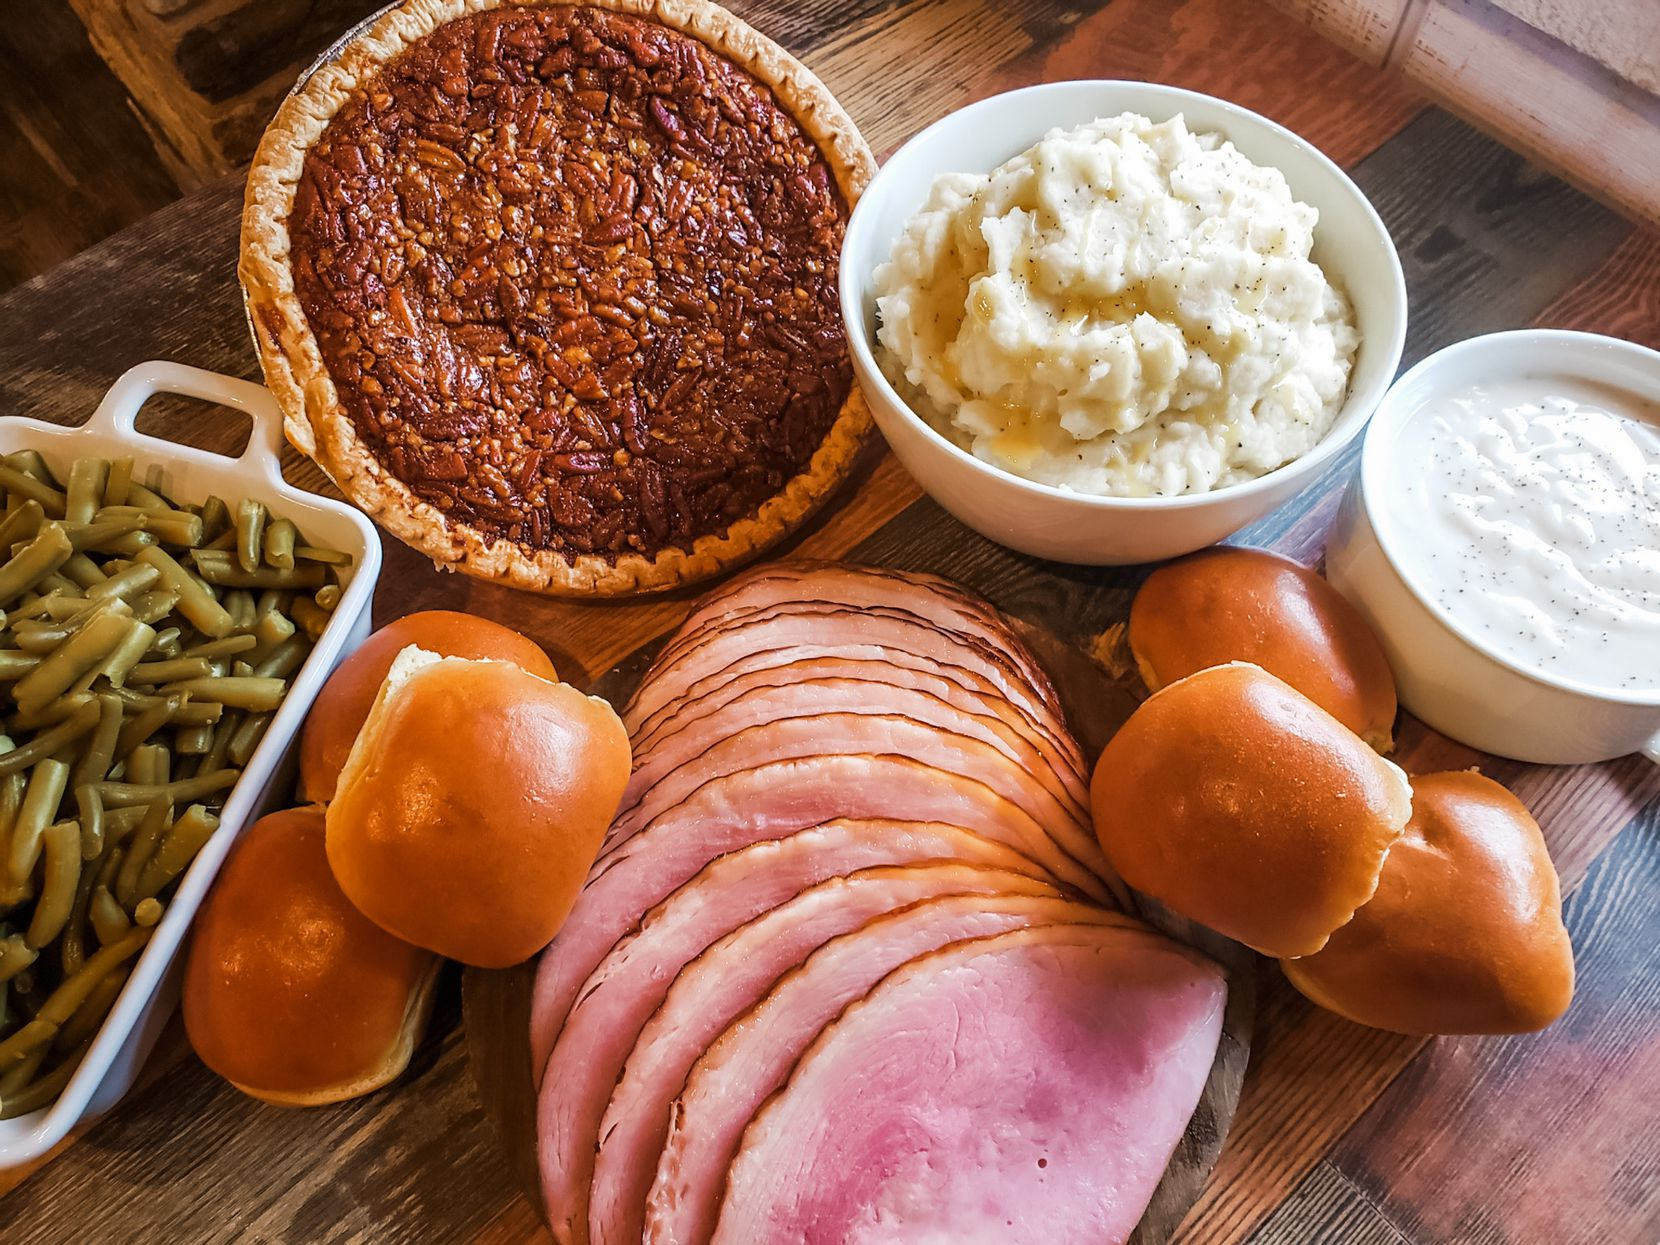 Soulman's Bar-B-Que offers a holiday meal featuring spiral slice ham, green beans, mashed potatoes, gravy, dinner rolls and pecan pie.